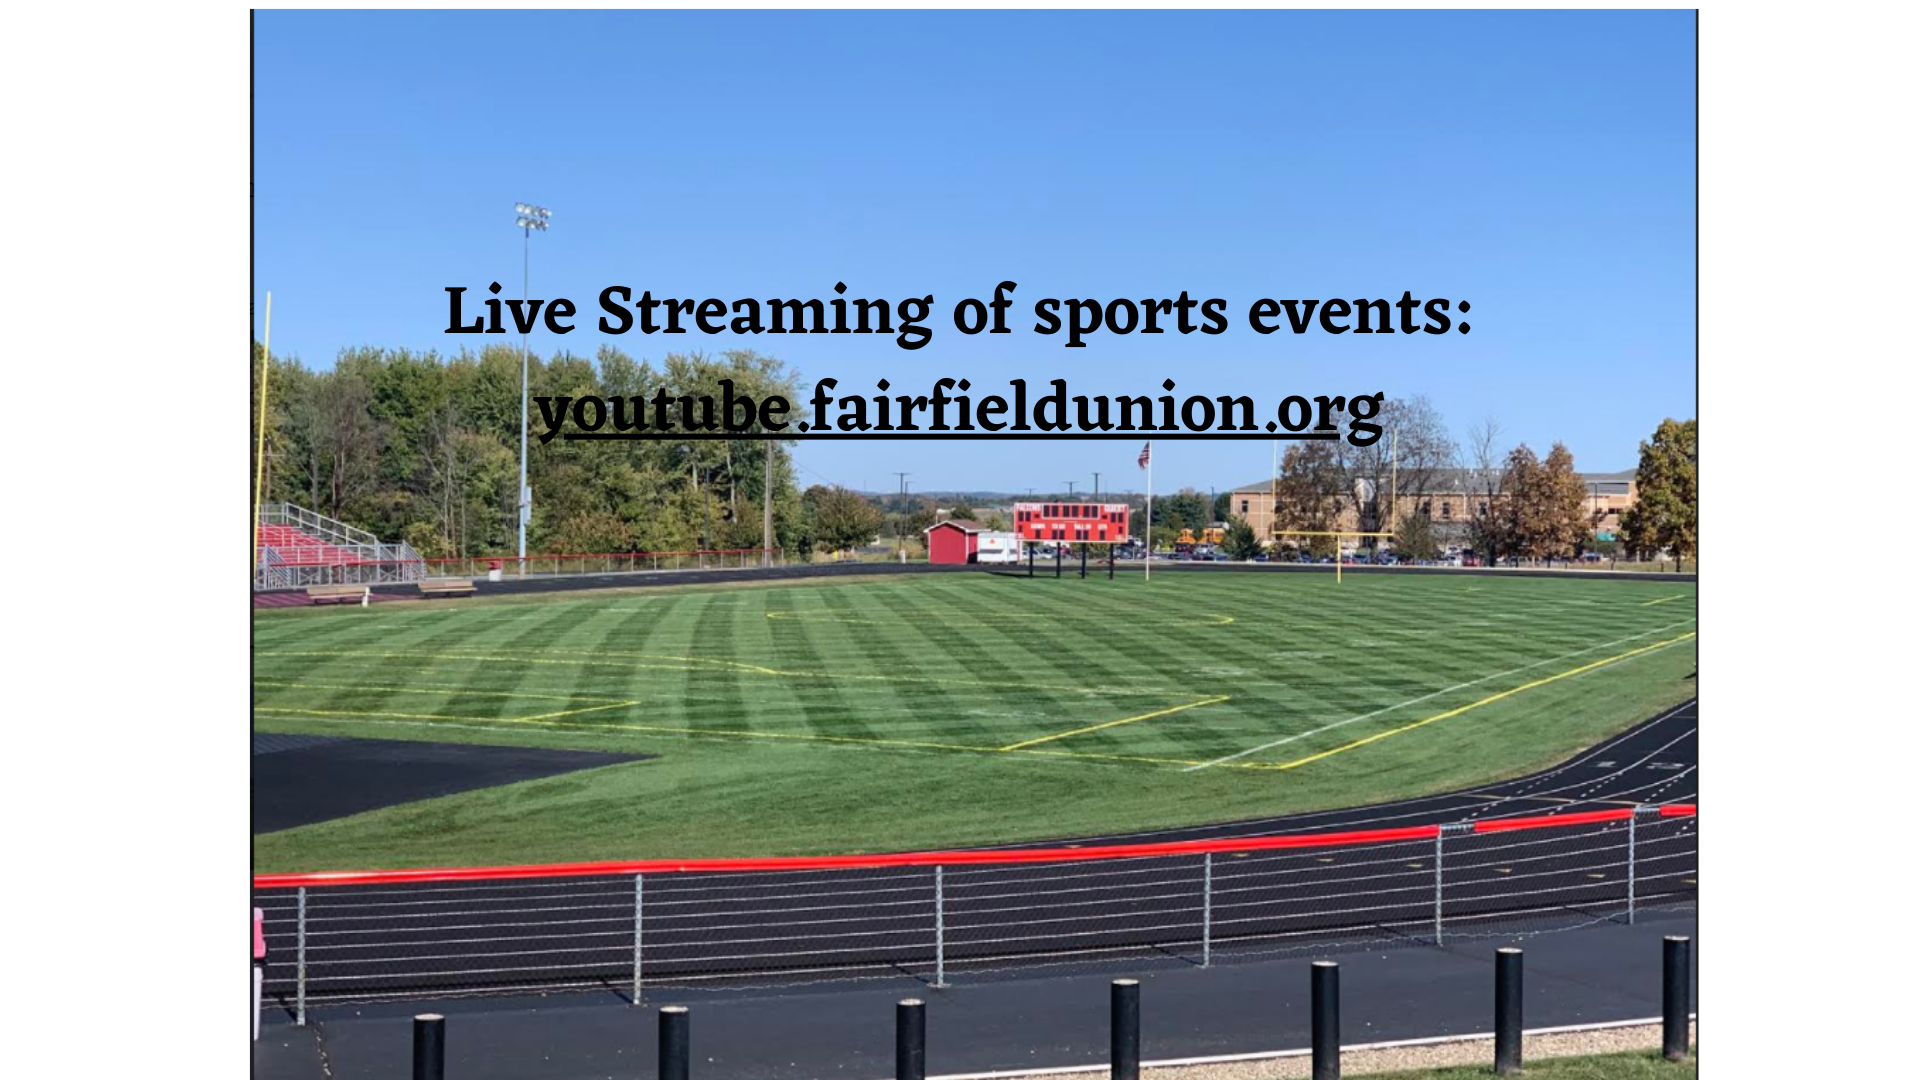 Live Streaming of Sports Link